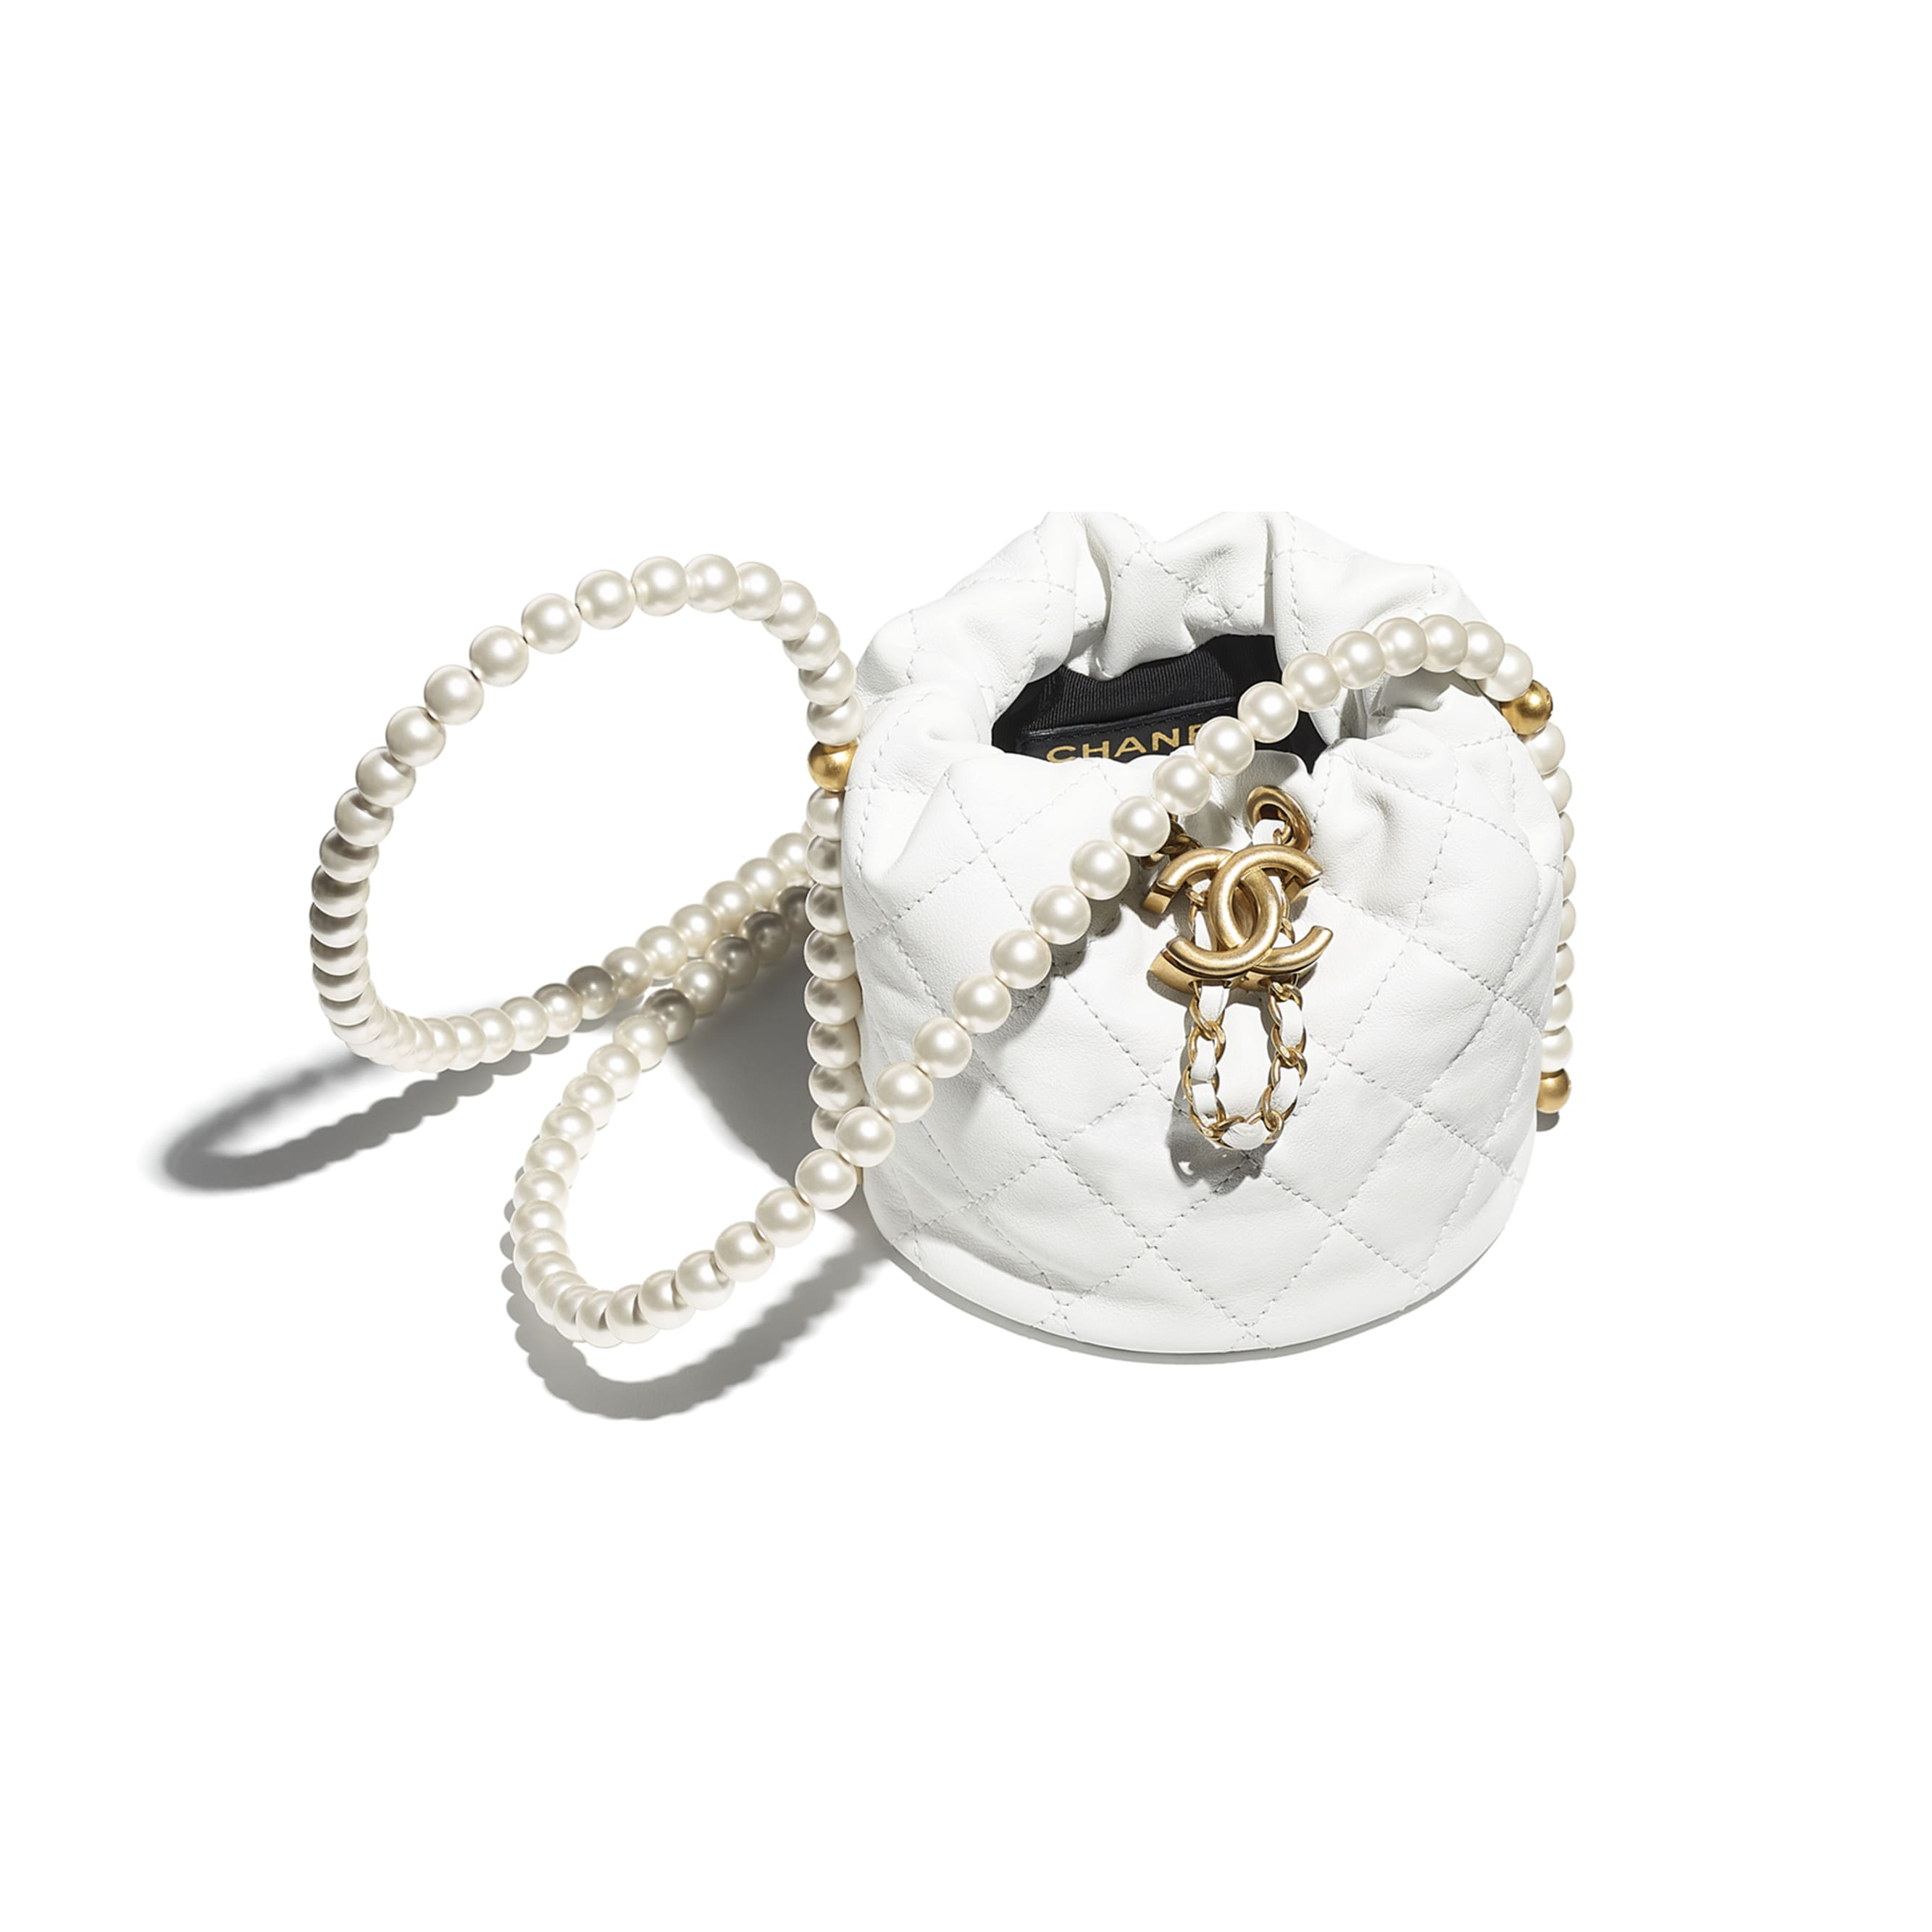 Mini Drawstring Bag - White - Calfskin, Imitation Pearls & Gold-Tone Metal - CHANEL - Other view - see standard sized version